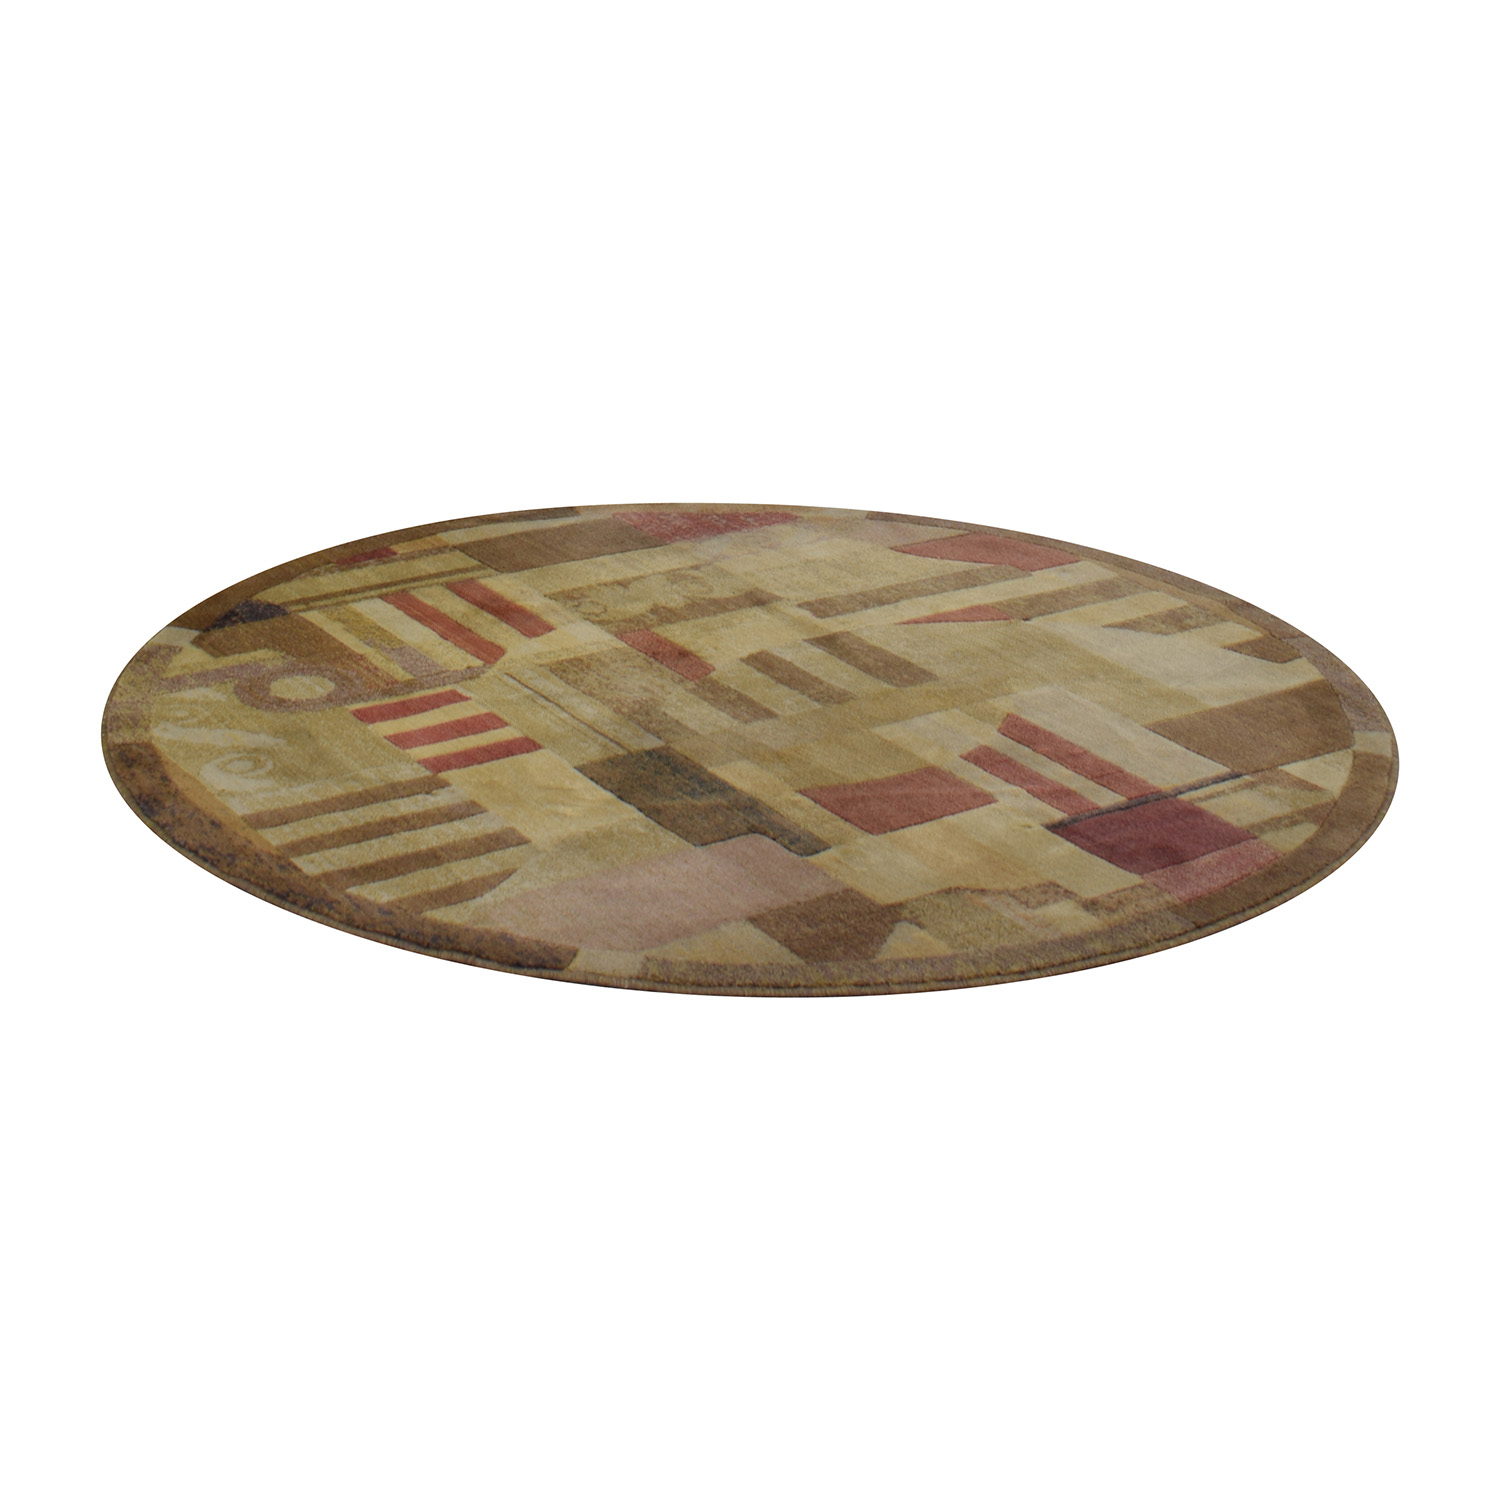 shop Beige Brown and Red Round Rug online